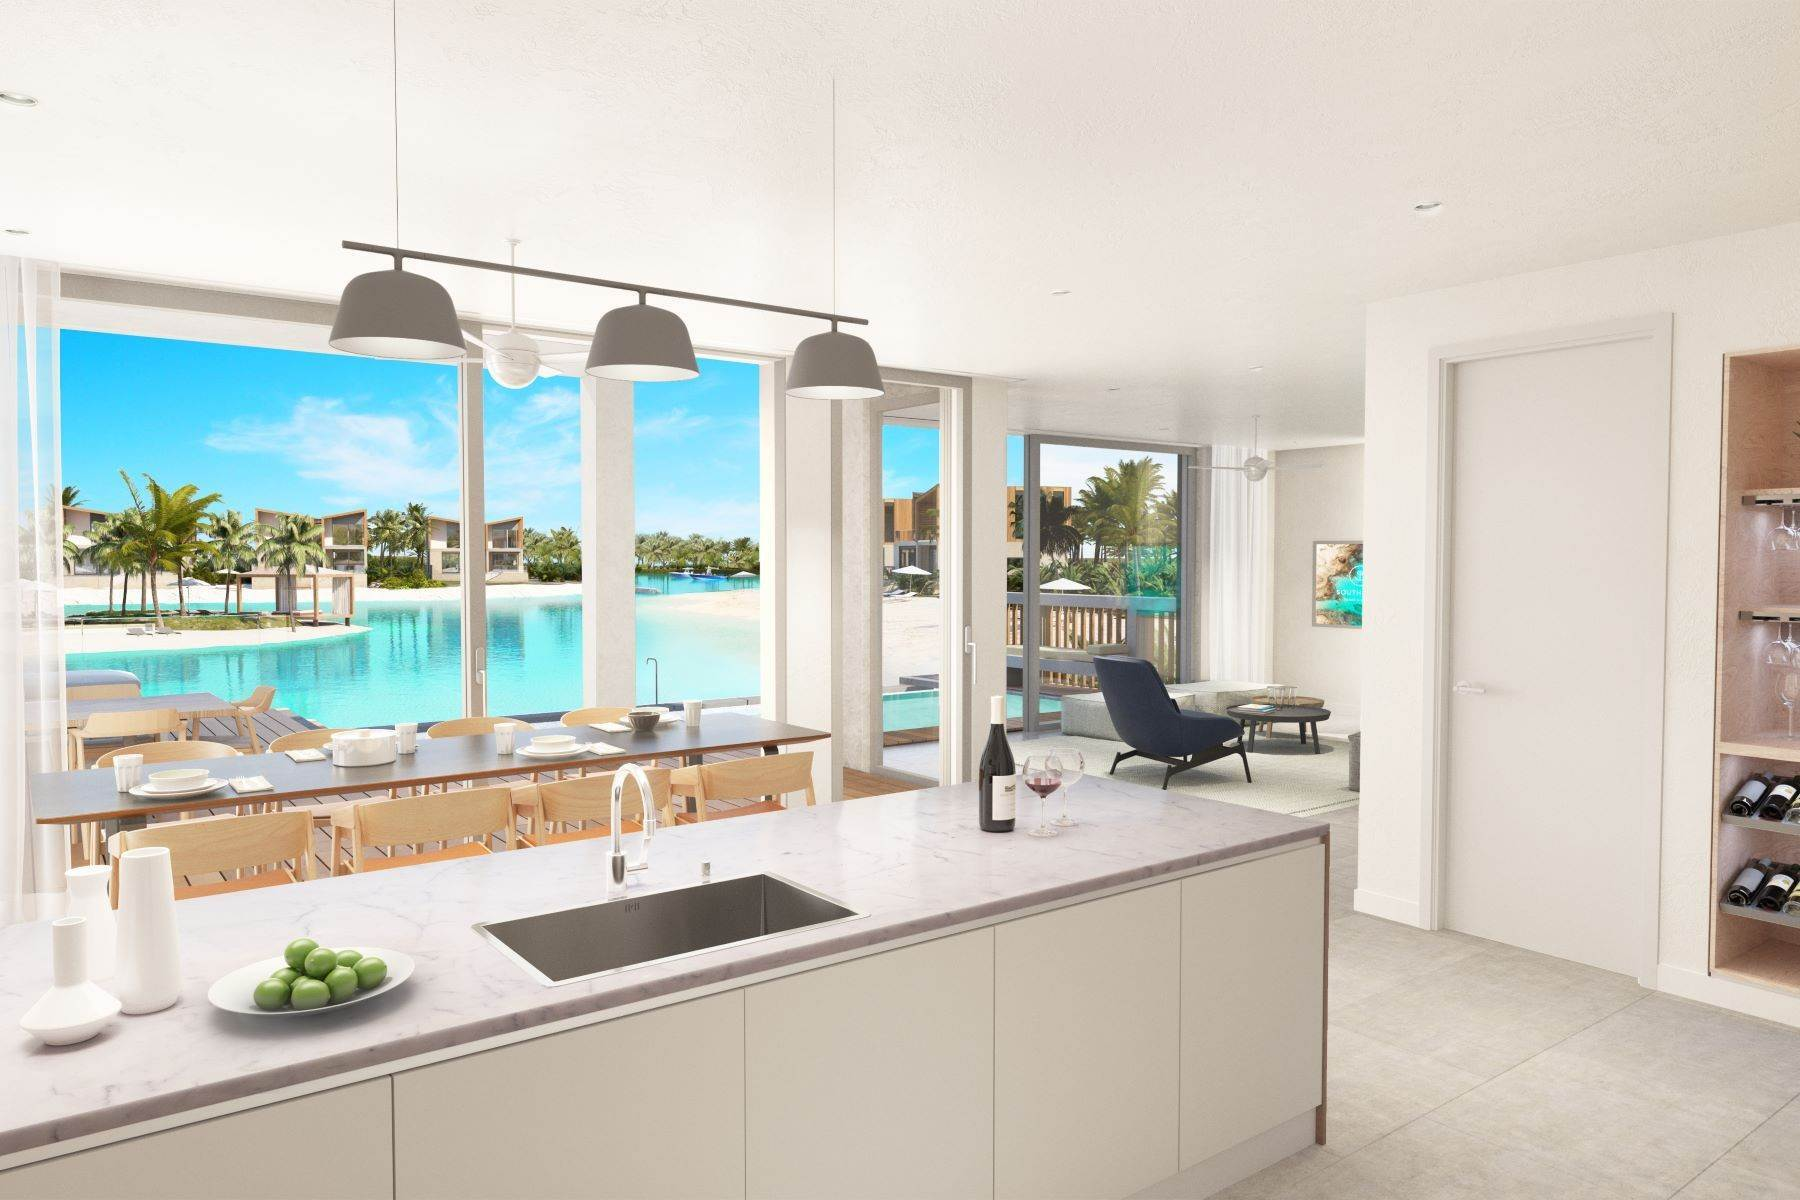 2. Single Family Homes for Sale at SOUTH BANK - THE LAGOON II - LAGOON VILLA 18 South Bank, Long Bay, Providenciales Turks And Caicos Islands